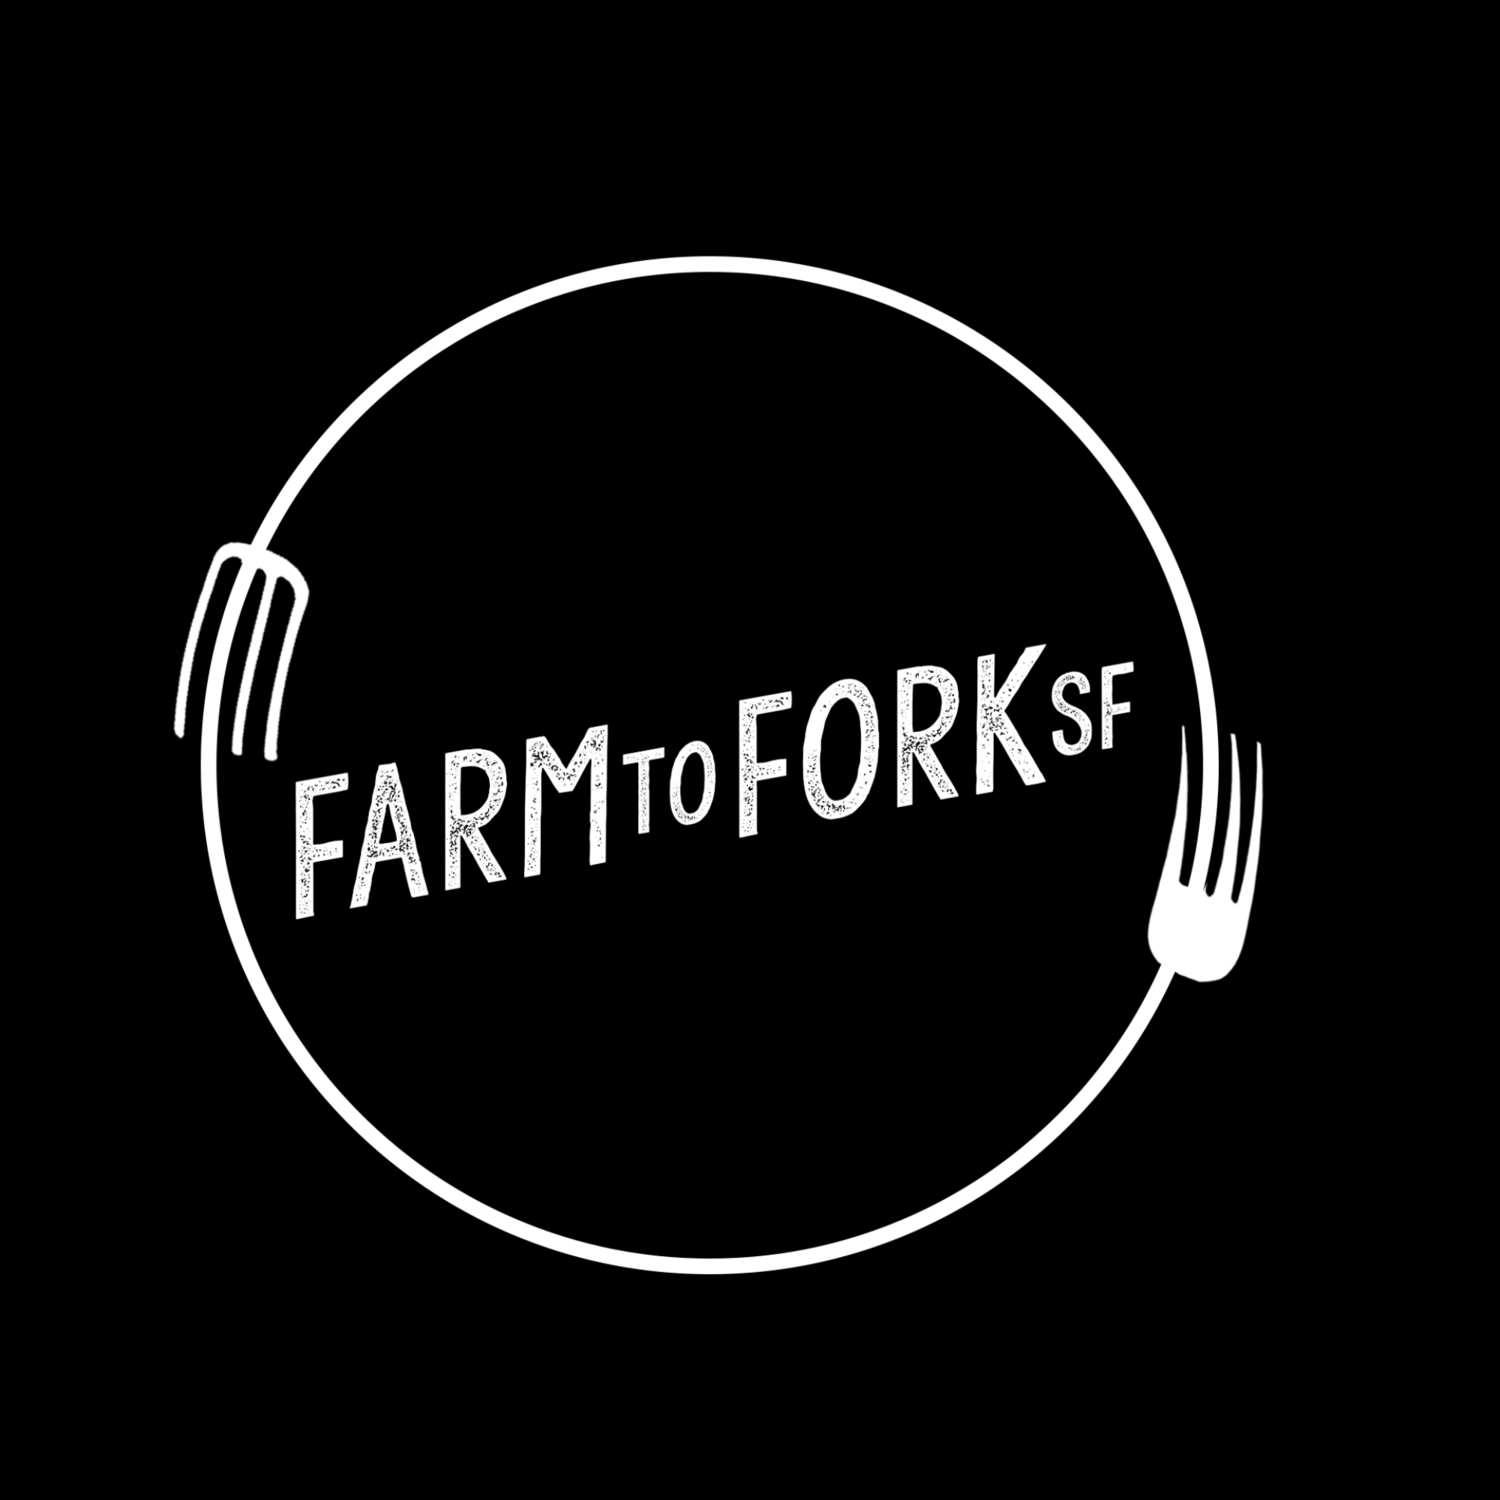 Farm To Fork SF: The Chefs